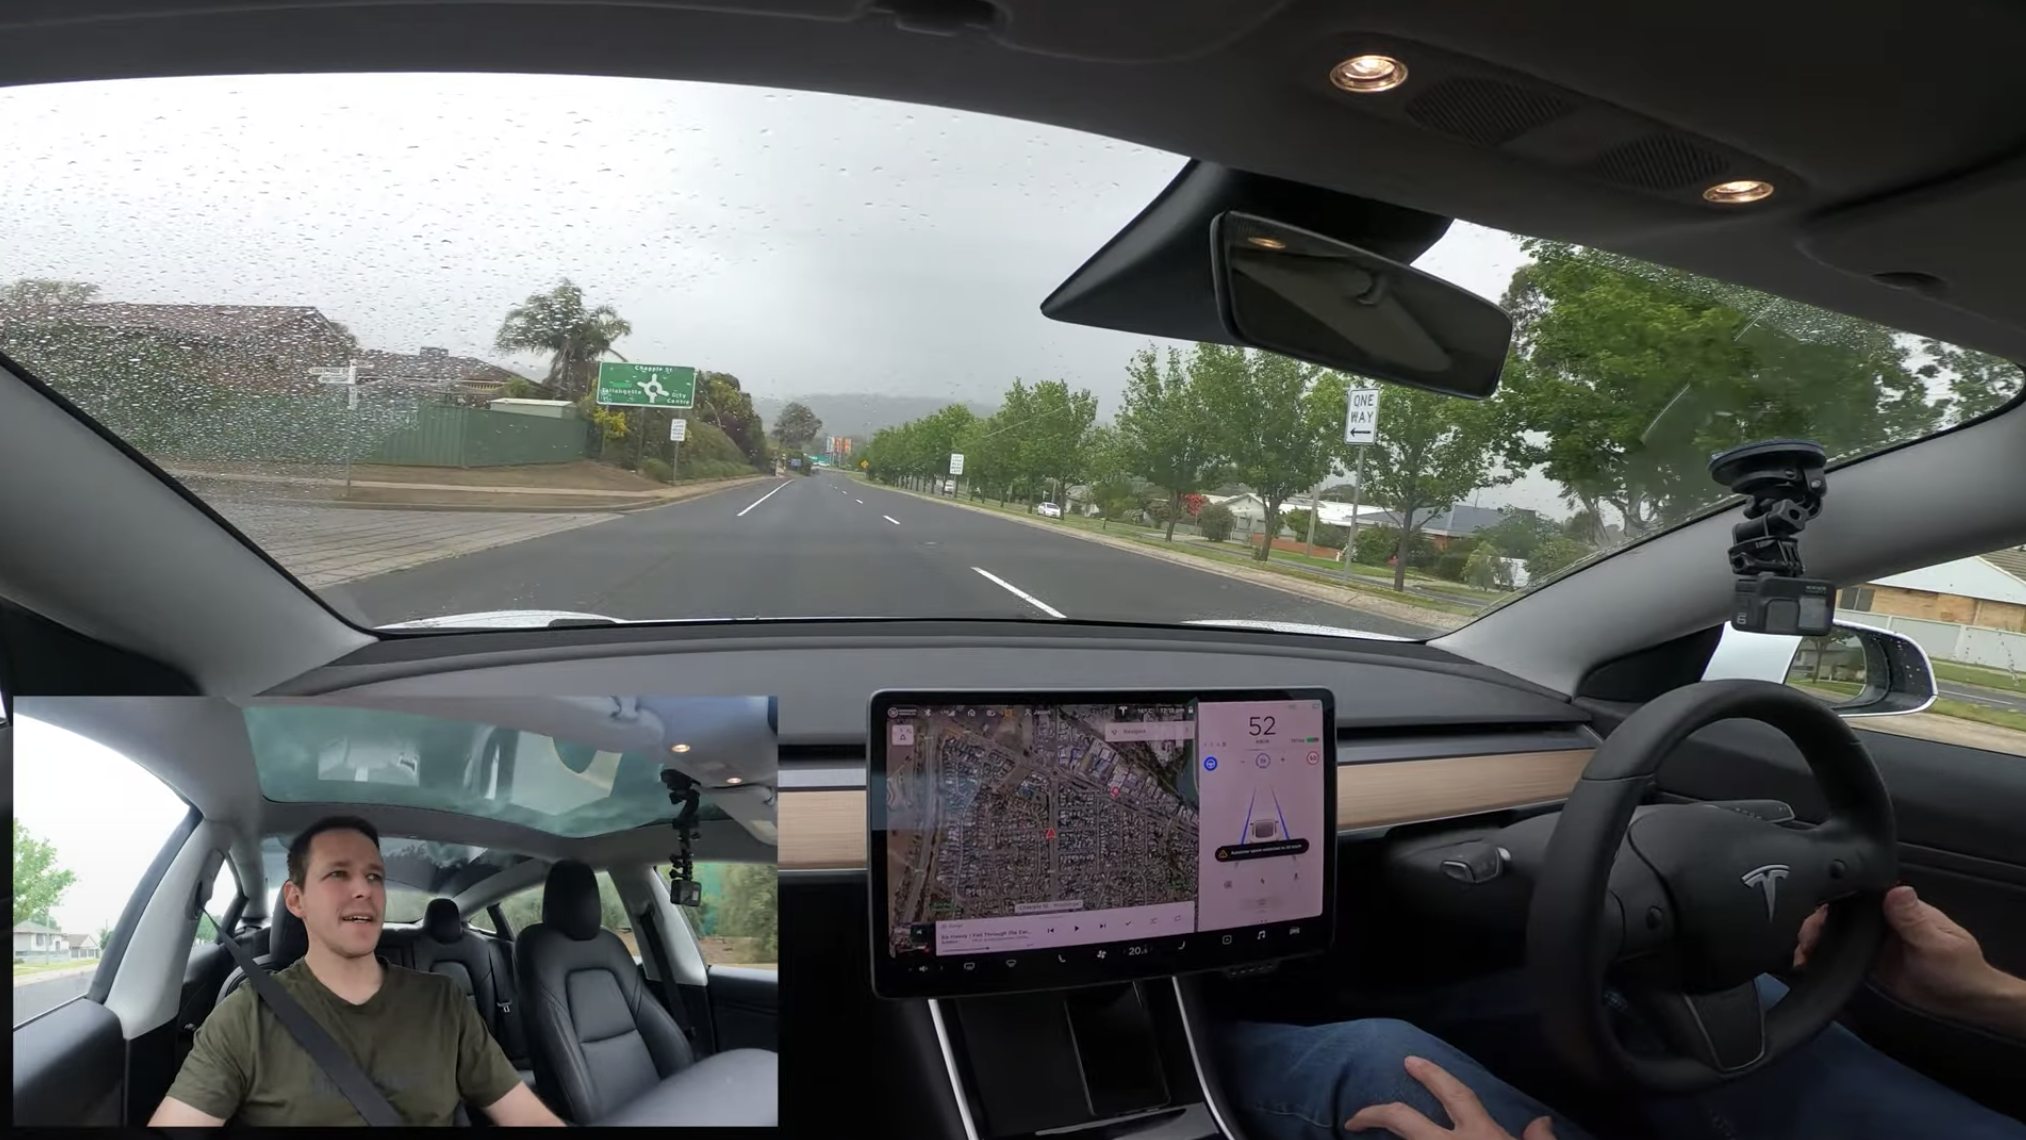 tesla-speed-limit-sign-recognition-before-update